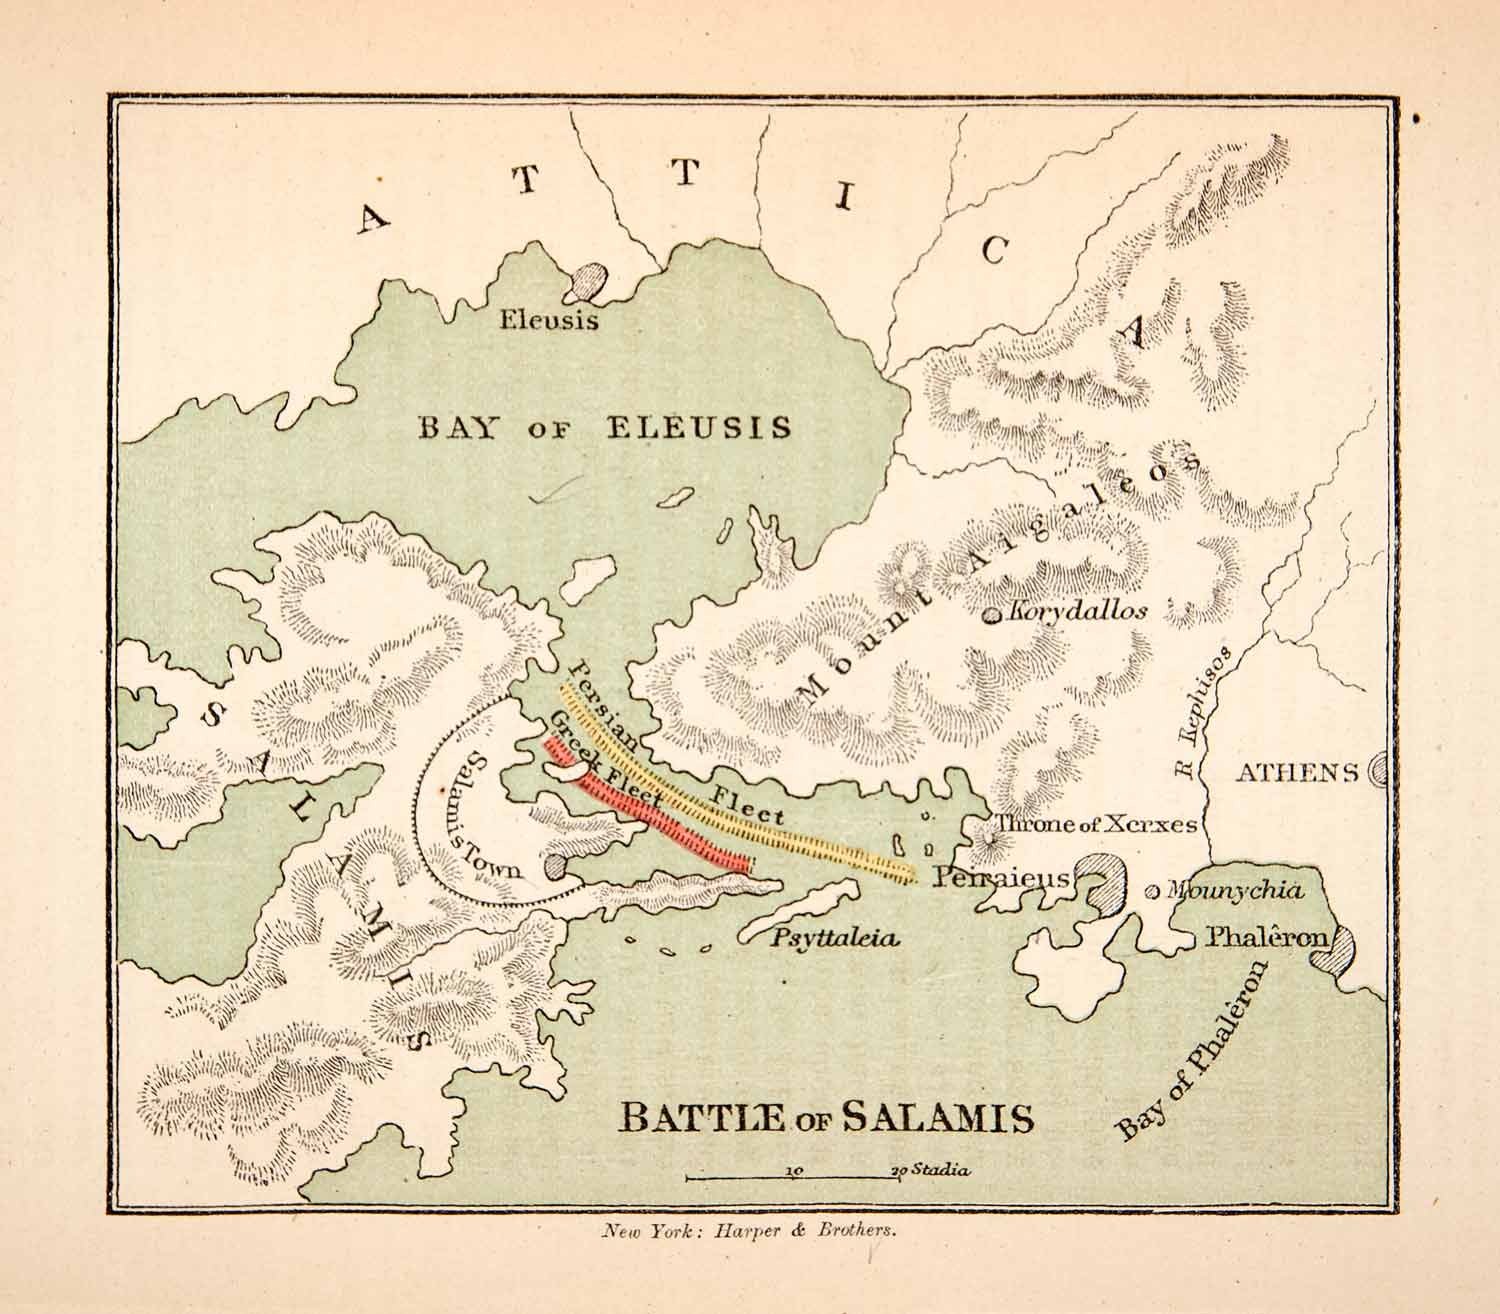 The Birth of Military Strategy: Enter the Battle of Salamis